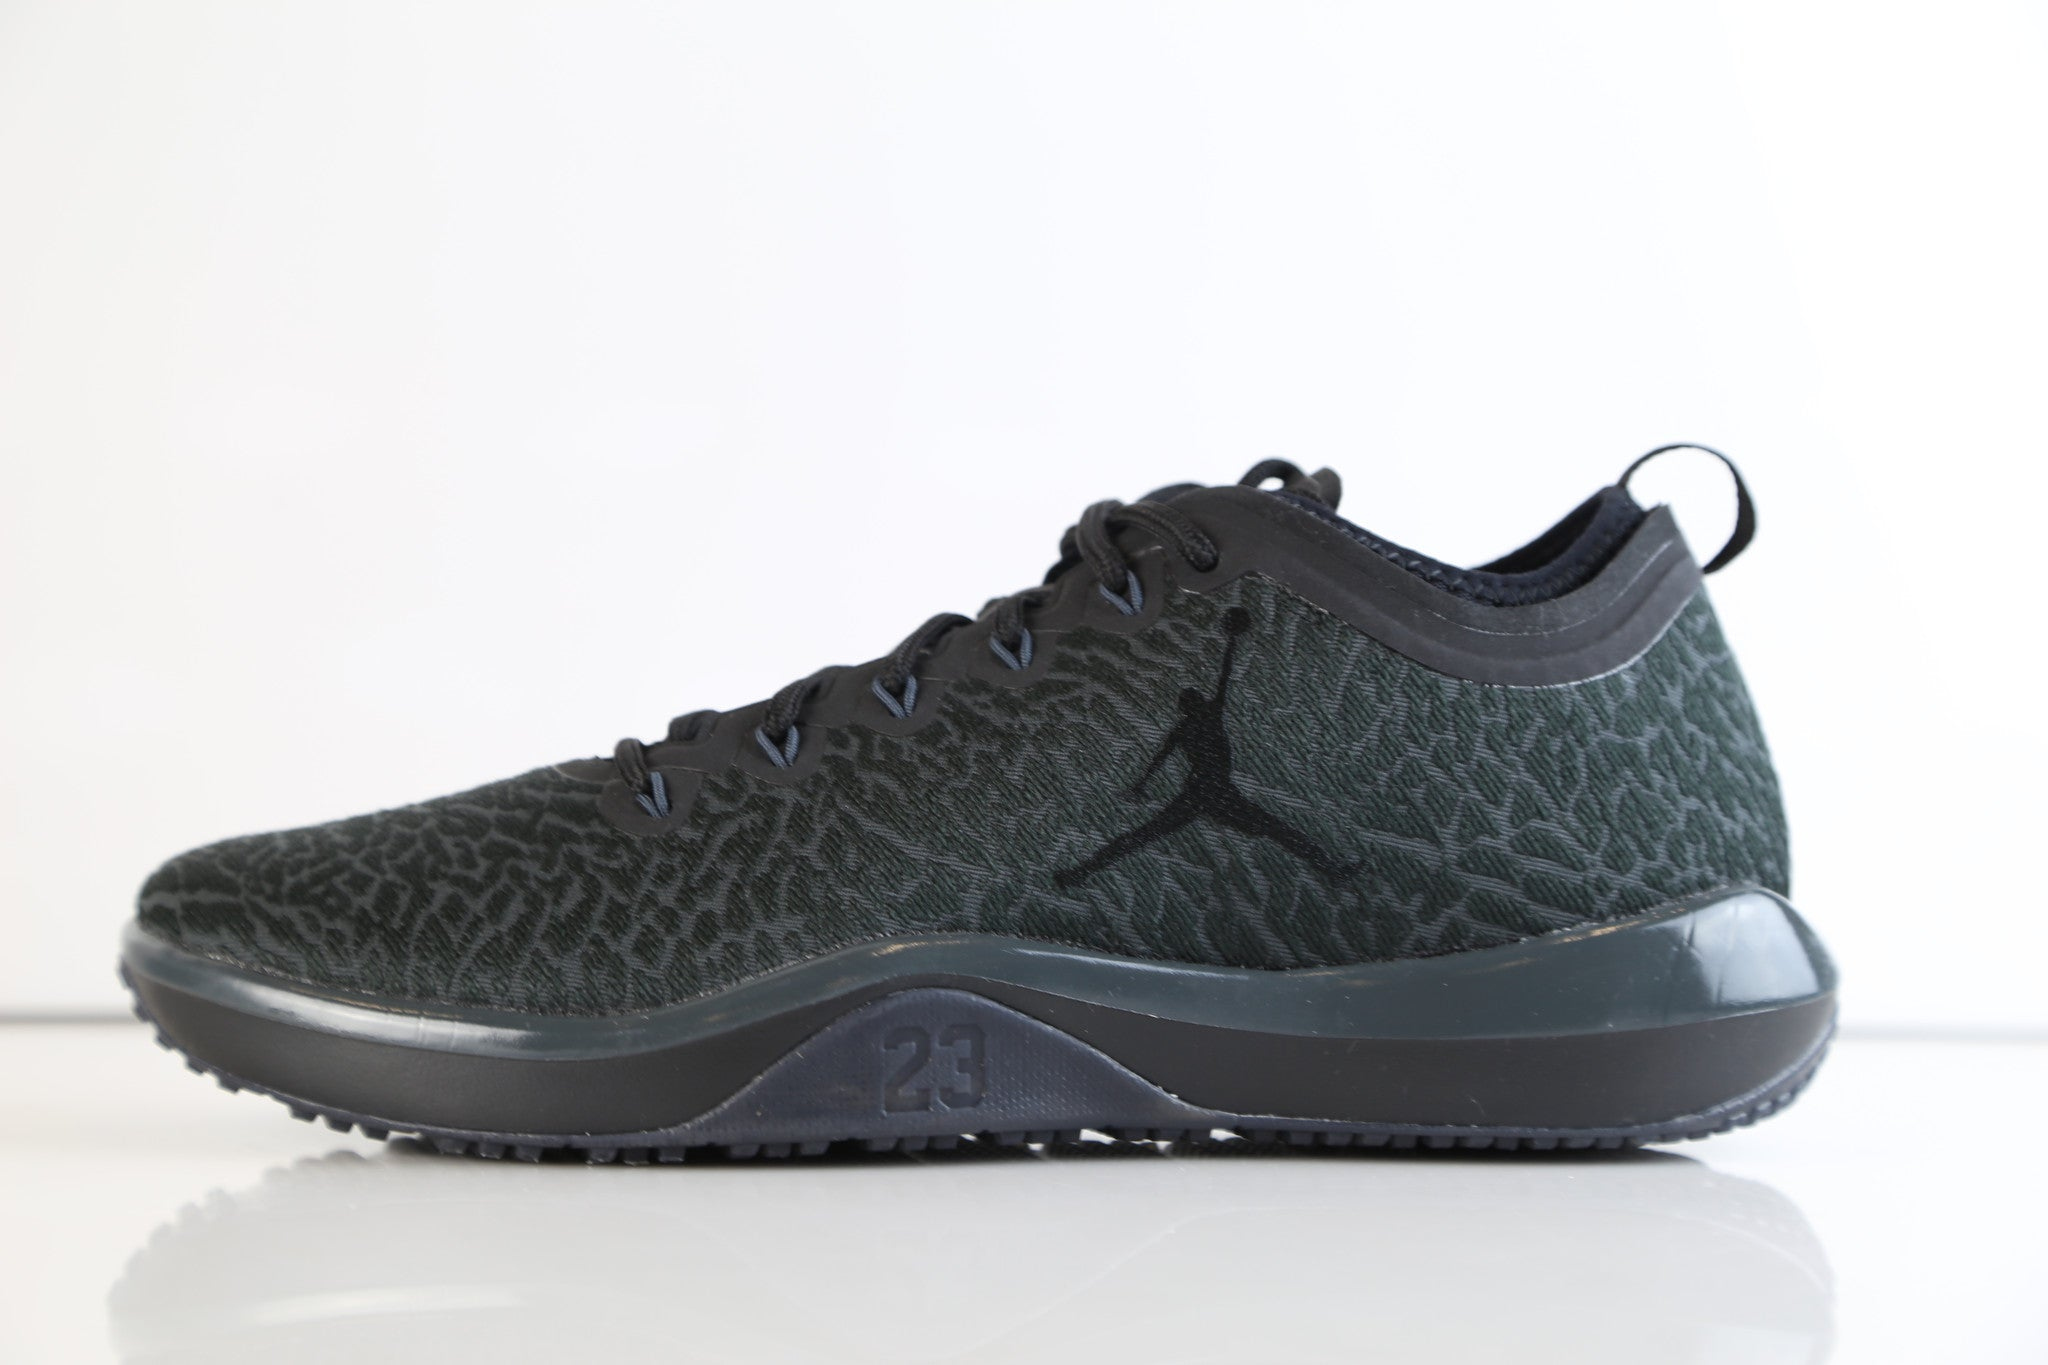 fd4eca5d9d4cd0 Nike Air Jordan Zoom Trainer 1 Low Black Anthracite 845403-002 ...